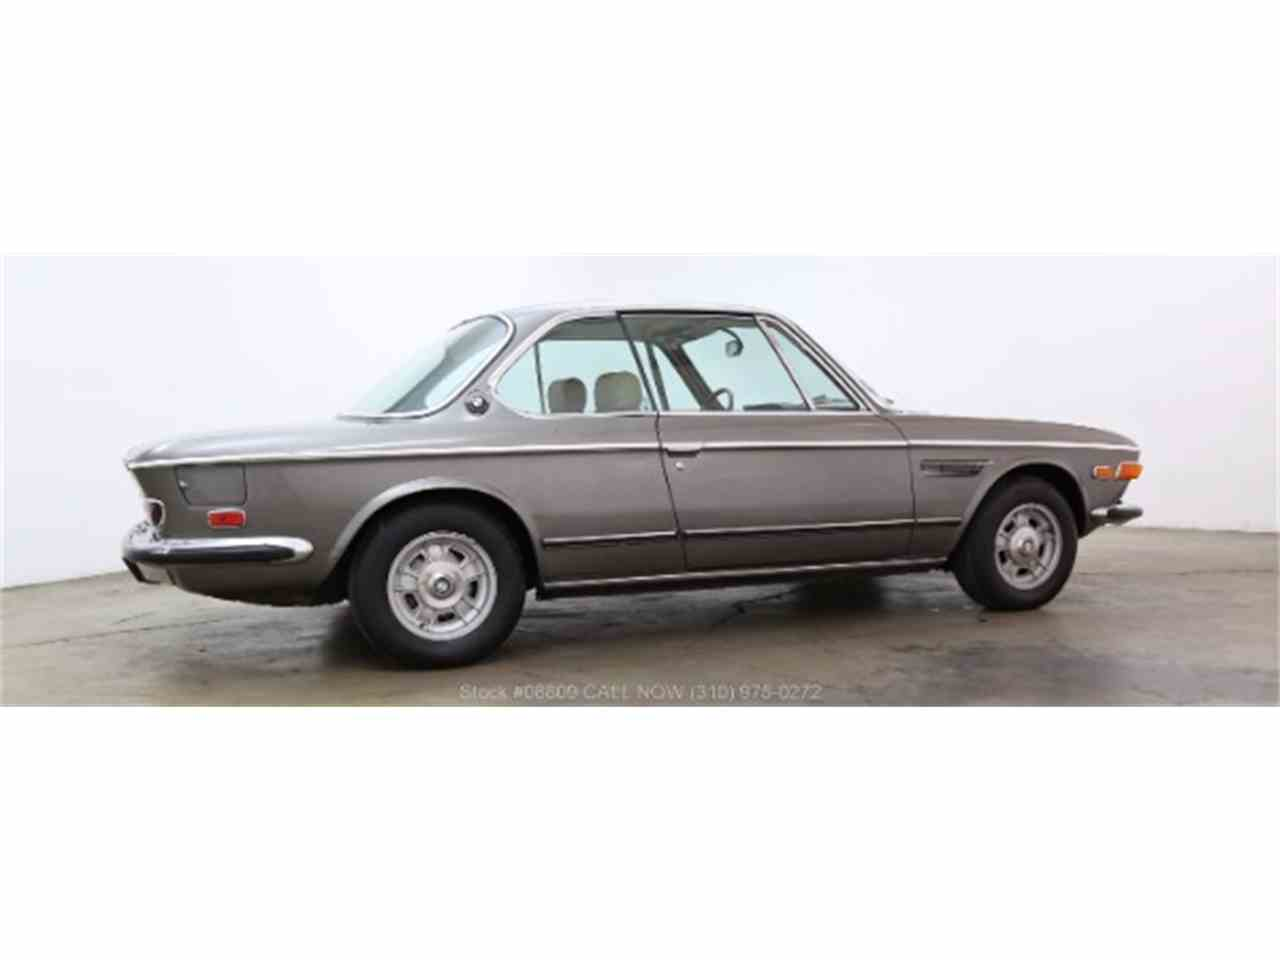 Large Picture of 1970 BMW 2800CS located in Beverly Hills California - $24,750.00 - MACE